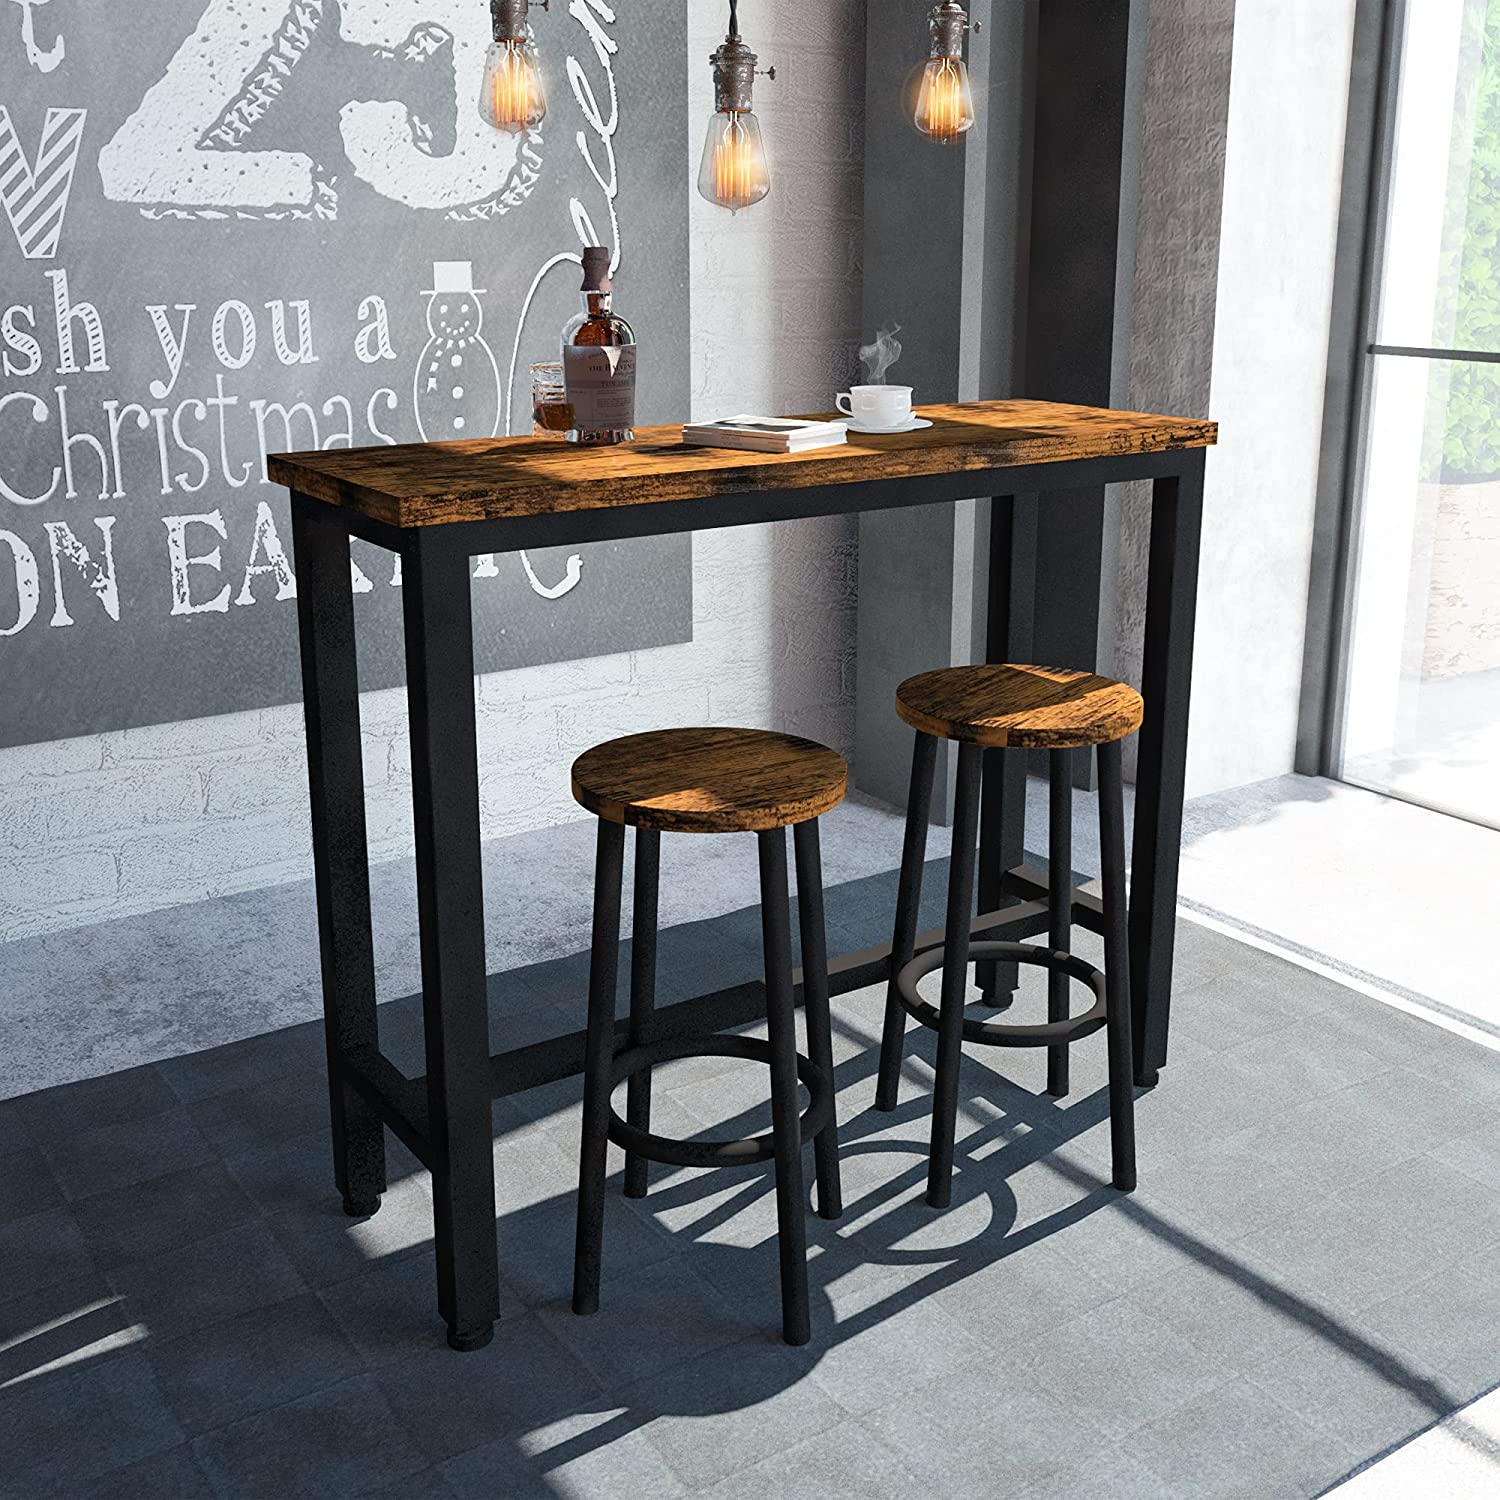 HOOSENG Bar Table Set 9PCS Round Kitchen Counter DiningTable with 9 Stools,  for Home Farmhouse Restaurant Cafe Kitchen Dining, Artificial Wood Top & ...